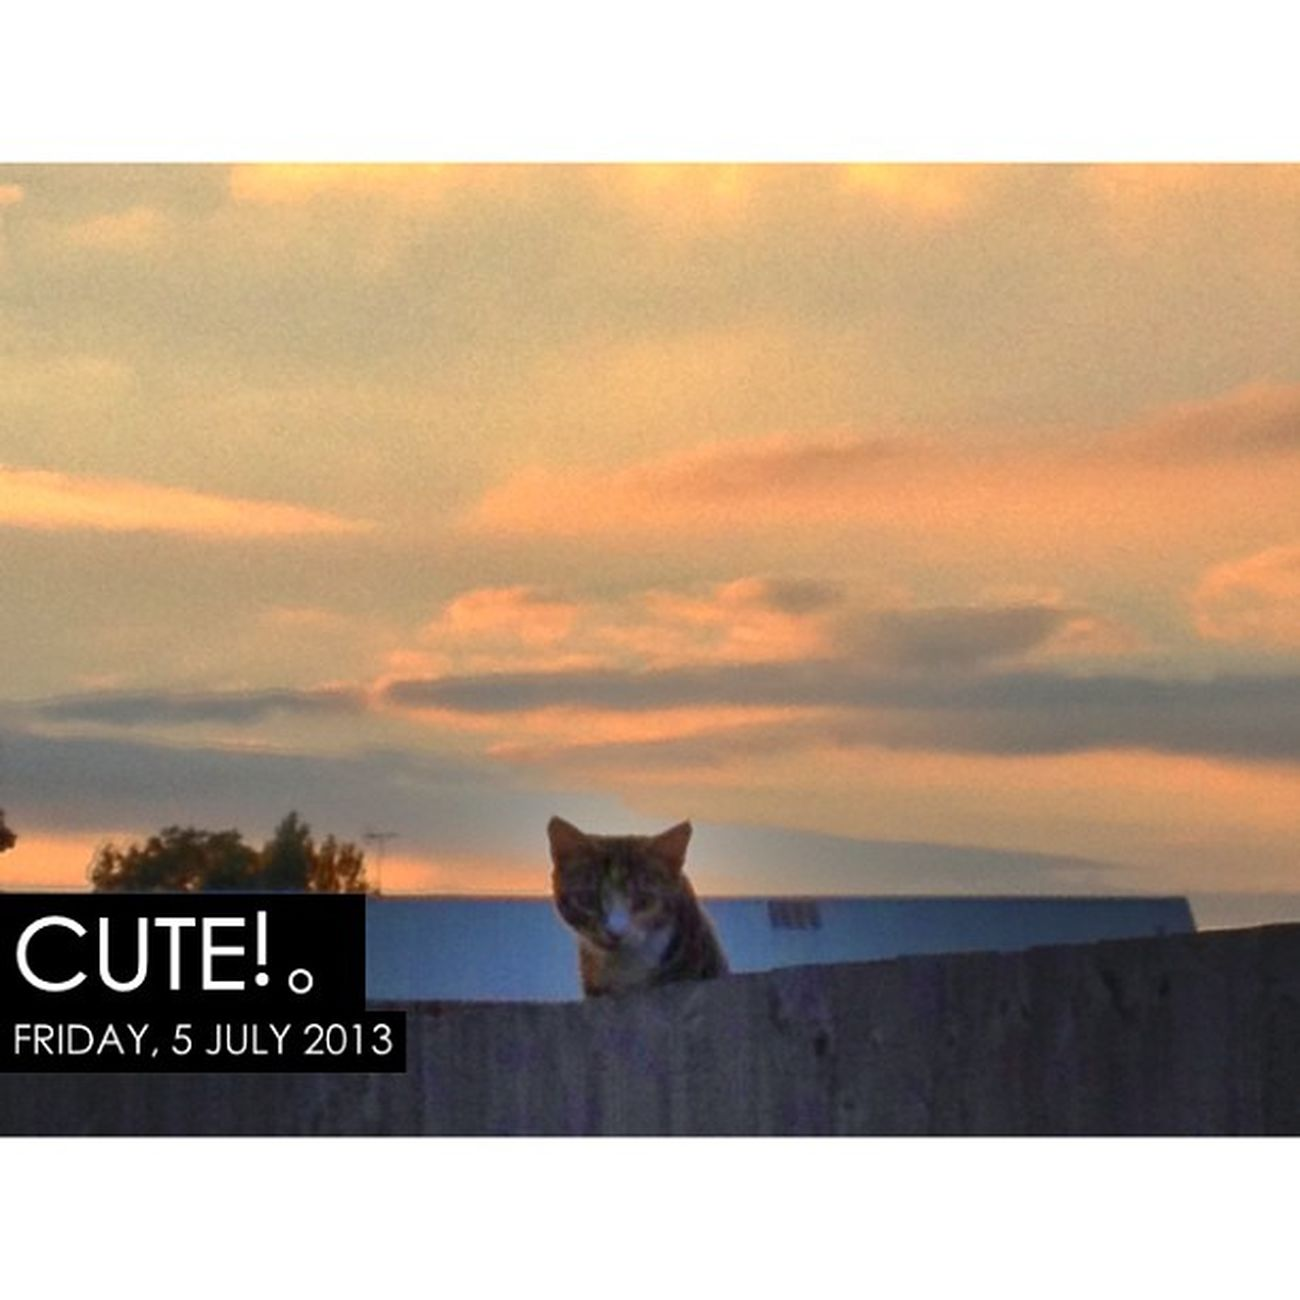 Photooftheday InstaCC Instaccpopd6 Cute K8marieuk Suttoninashfield Nottinghamshire Sunset Petsofig Cats Catsofig Petsofinstagram Catsofinstagram Crazycatlady Peeping Peep Peepbo Watching Fence Skypainters Skysnappers Cloudporn Tabby TabbyCat Tabbysofinstagram photo365